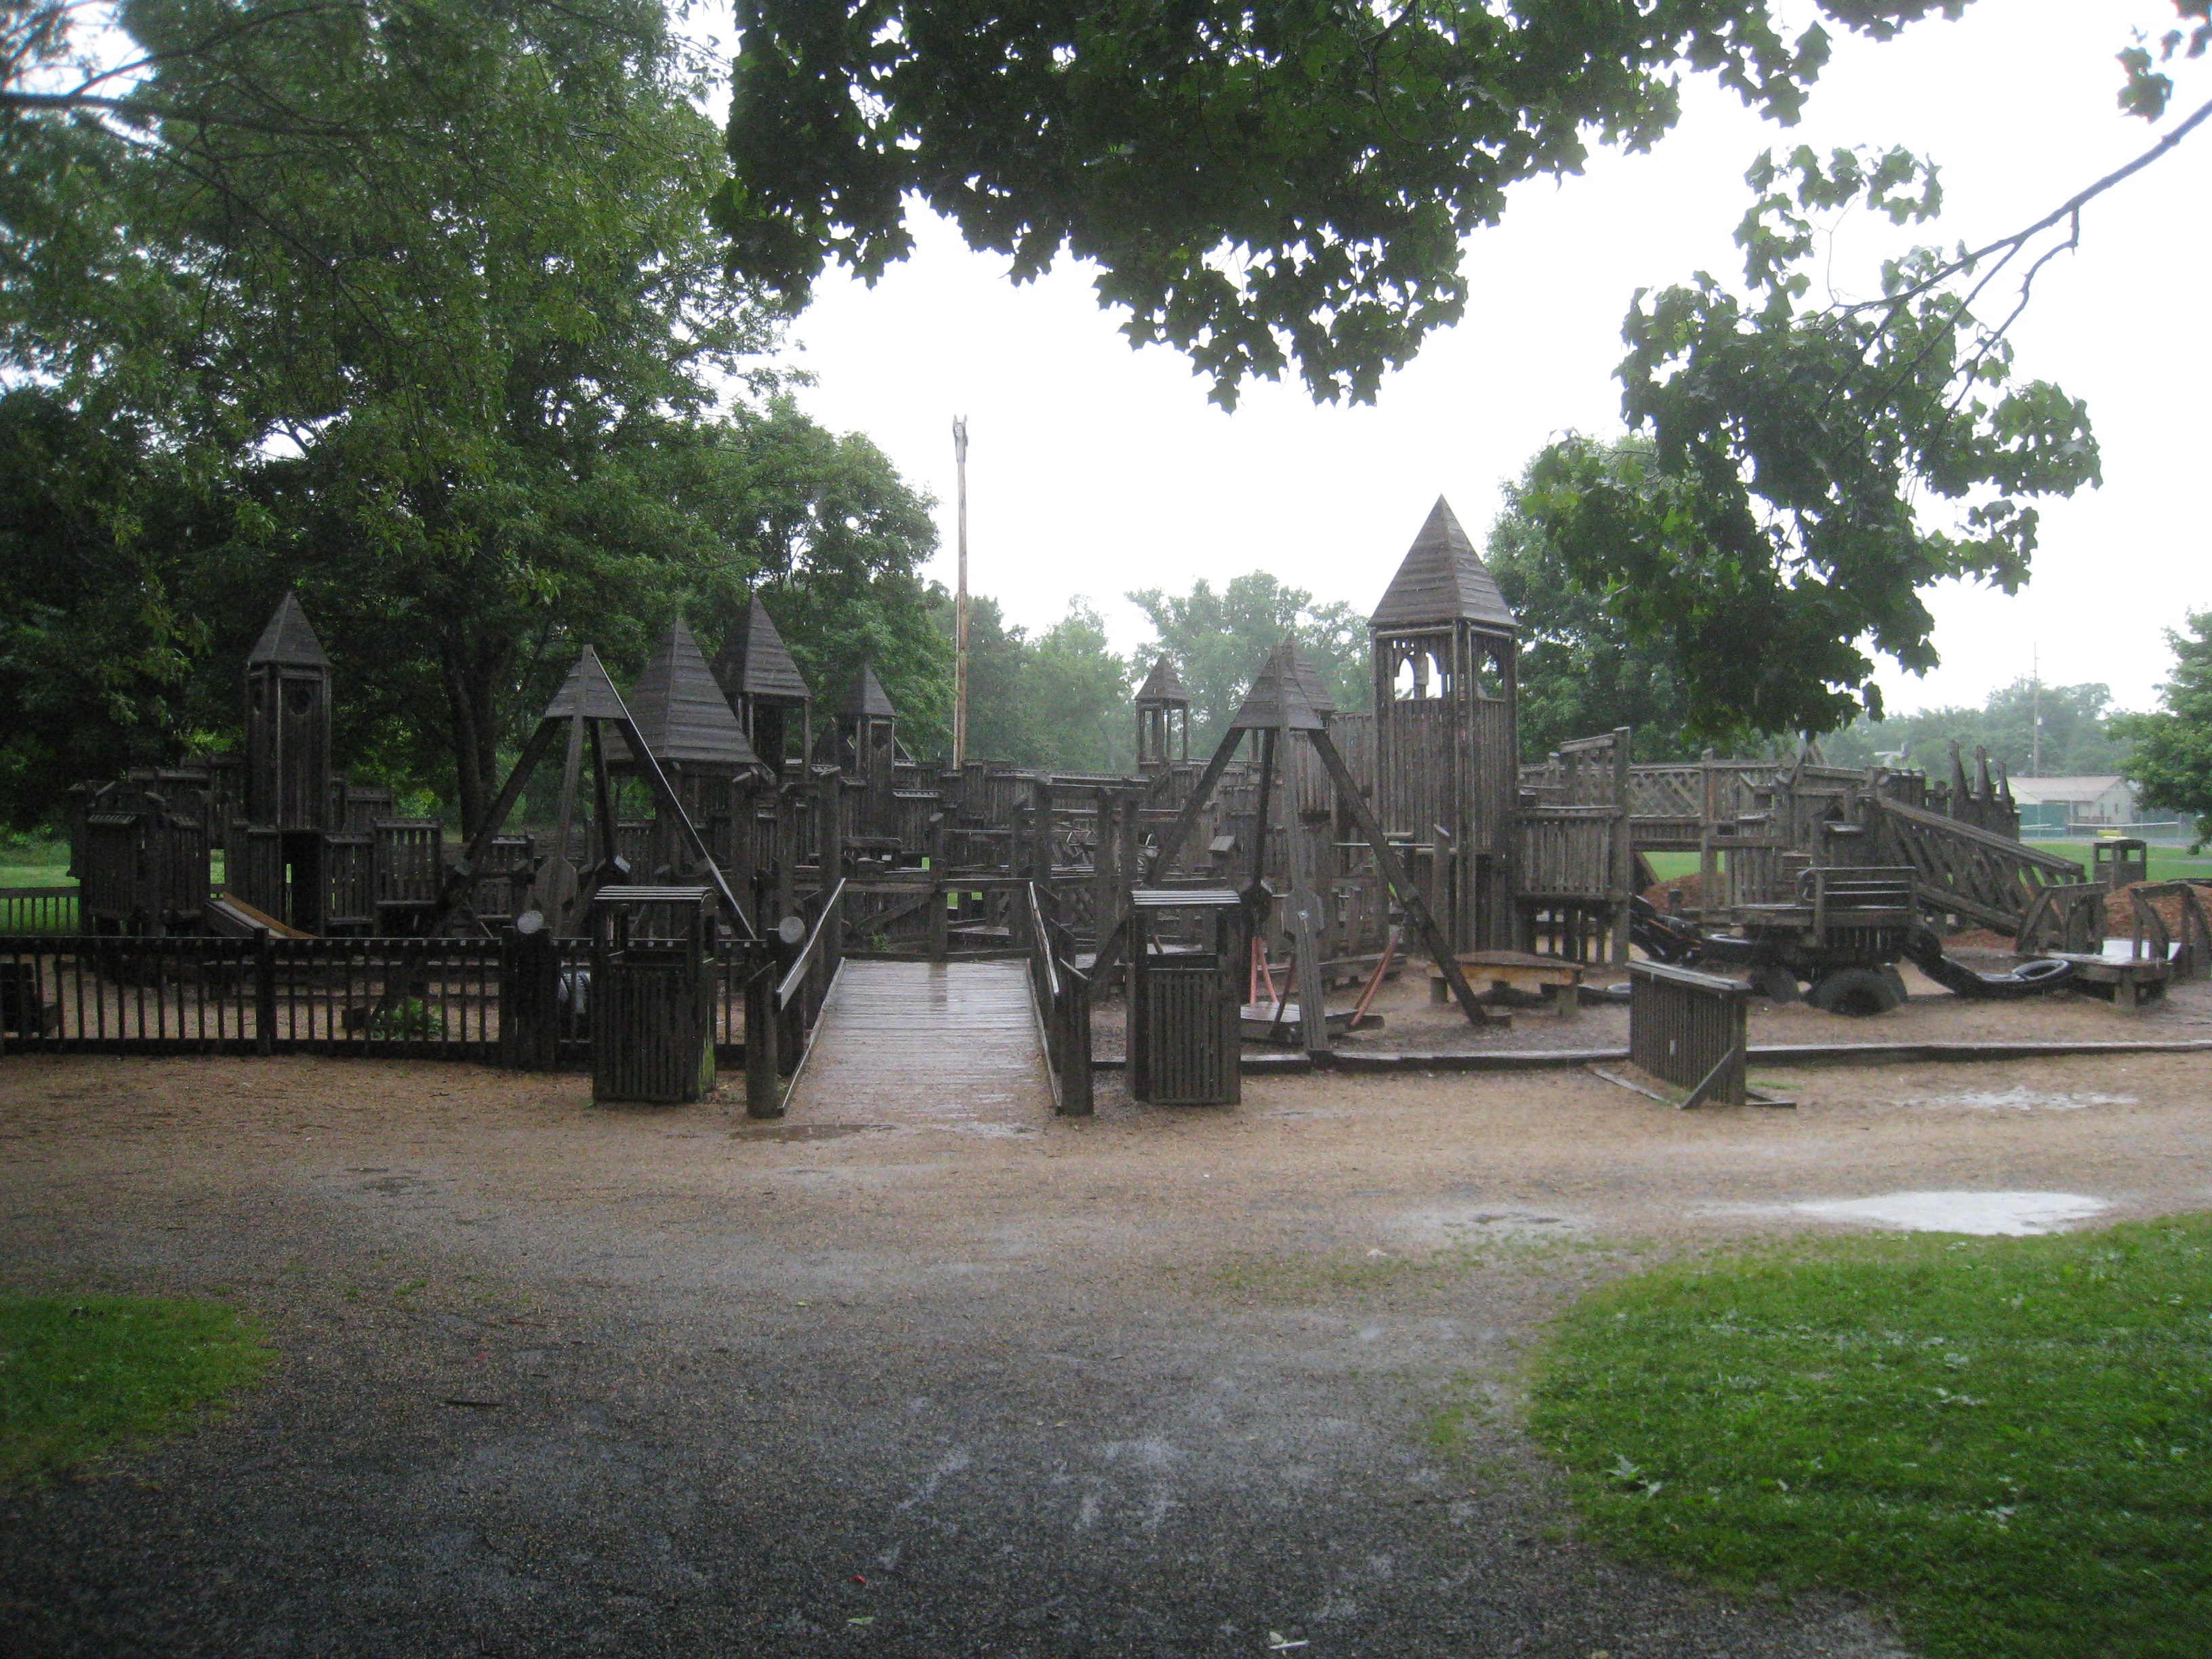 Reclaiming Kids Castle The Virginia Conservative